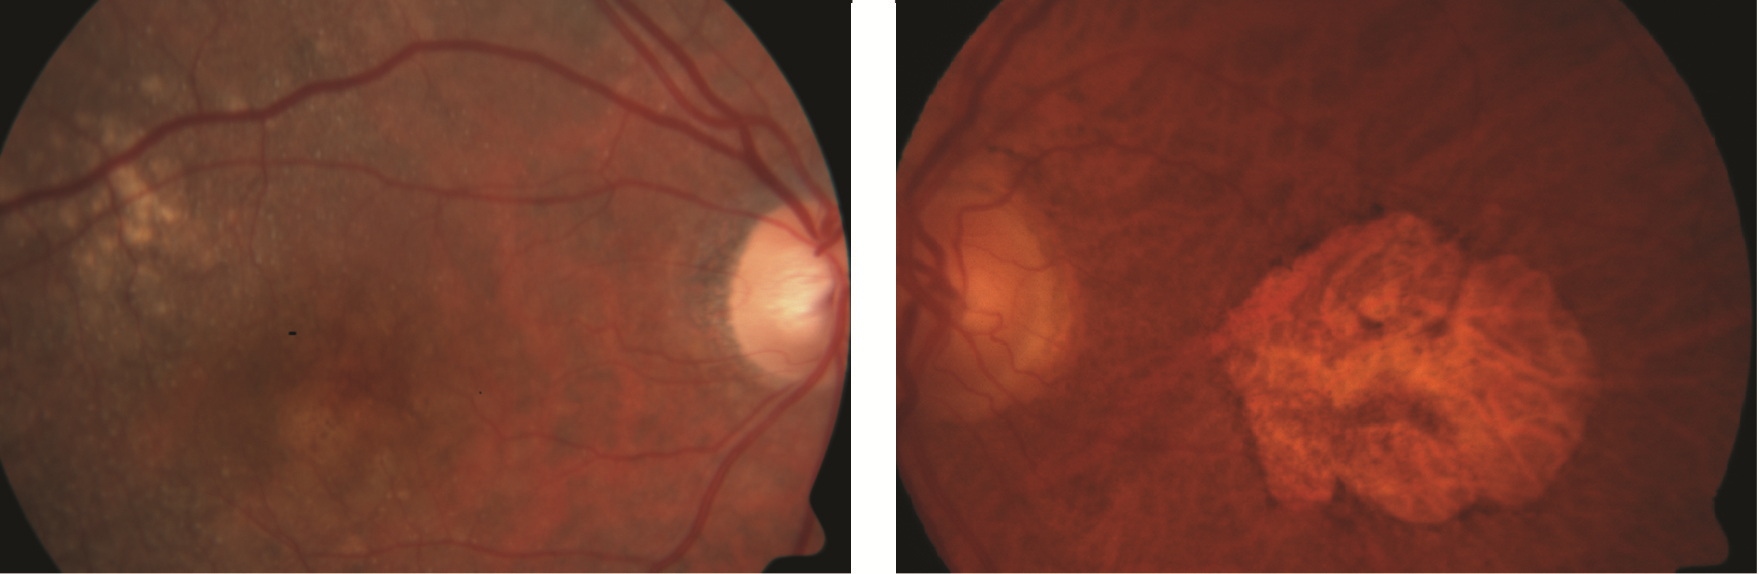 Figure 1. Dry AMD. A. Drusen (indicated by arrow). B. Geographic atrophy Photo courtesy Anat Loewenstein, MD